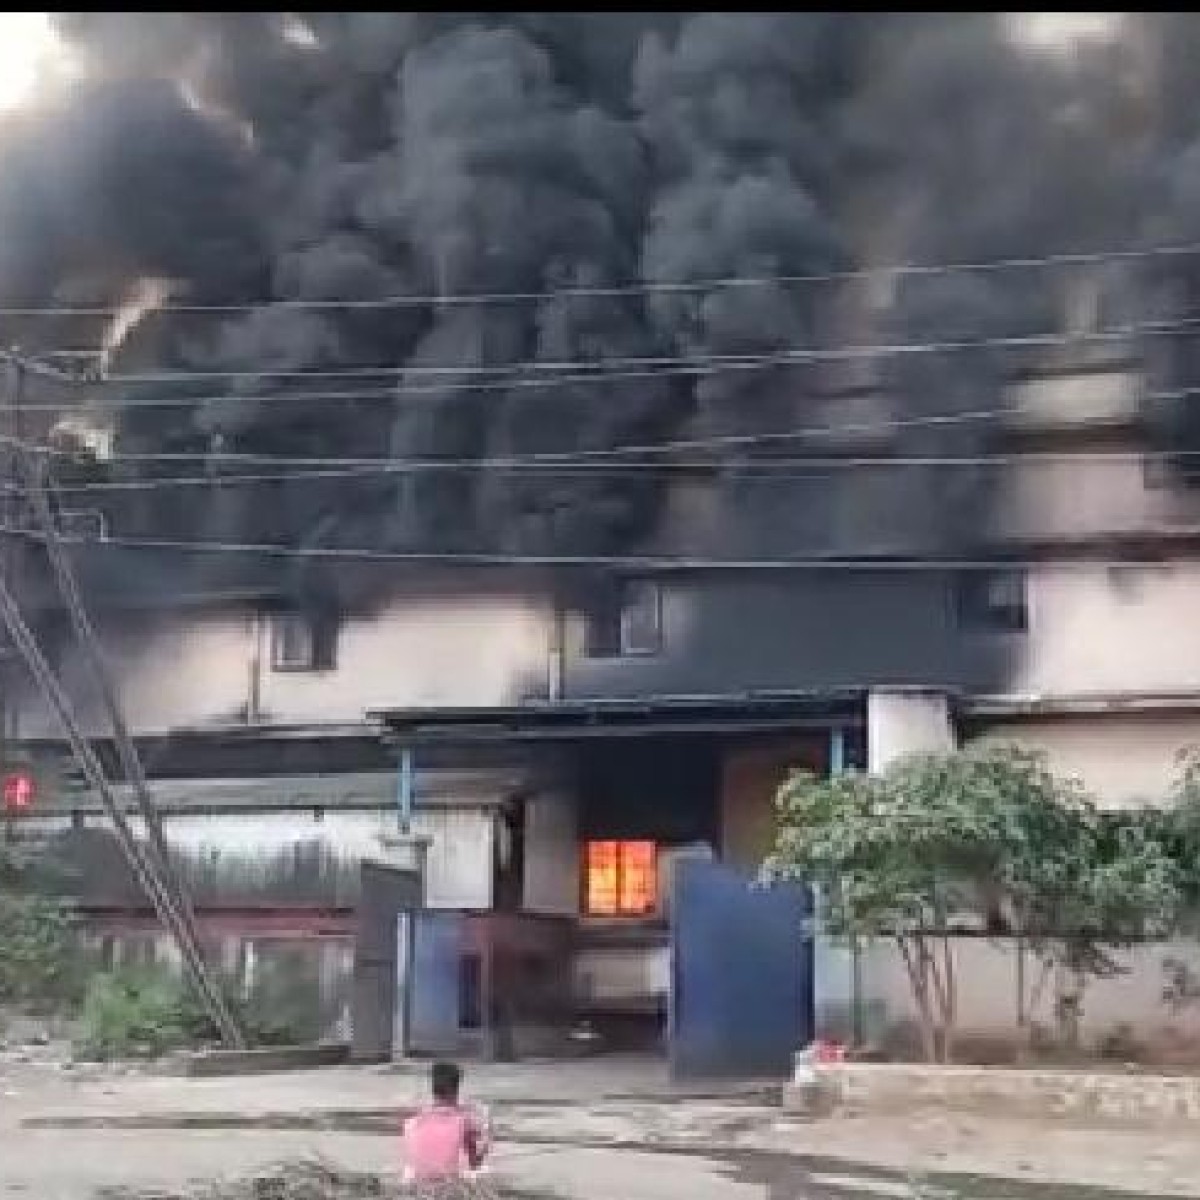 Thane: Fire breaks out at a factory in Ambernath; no casualties reported